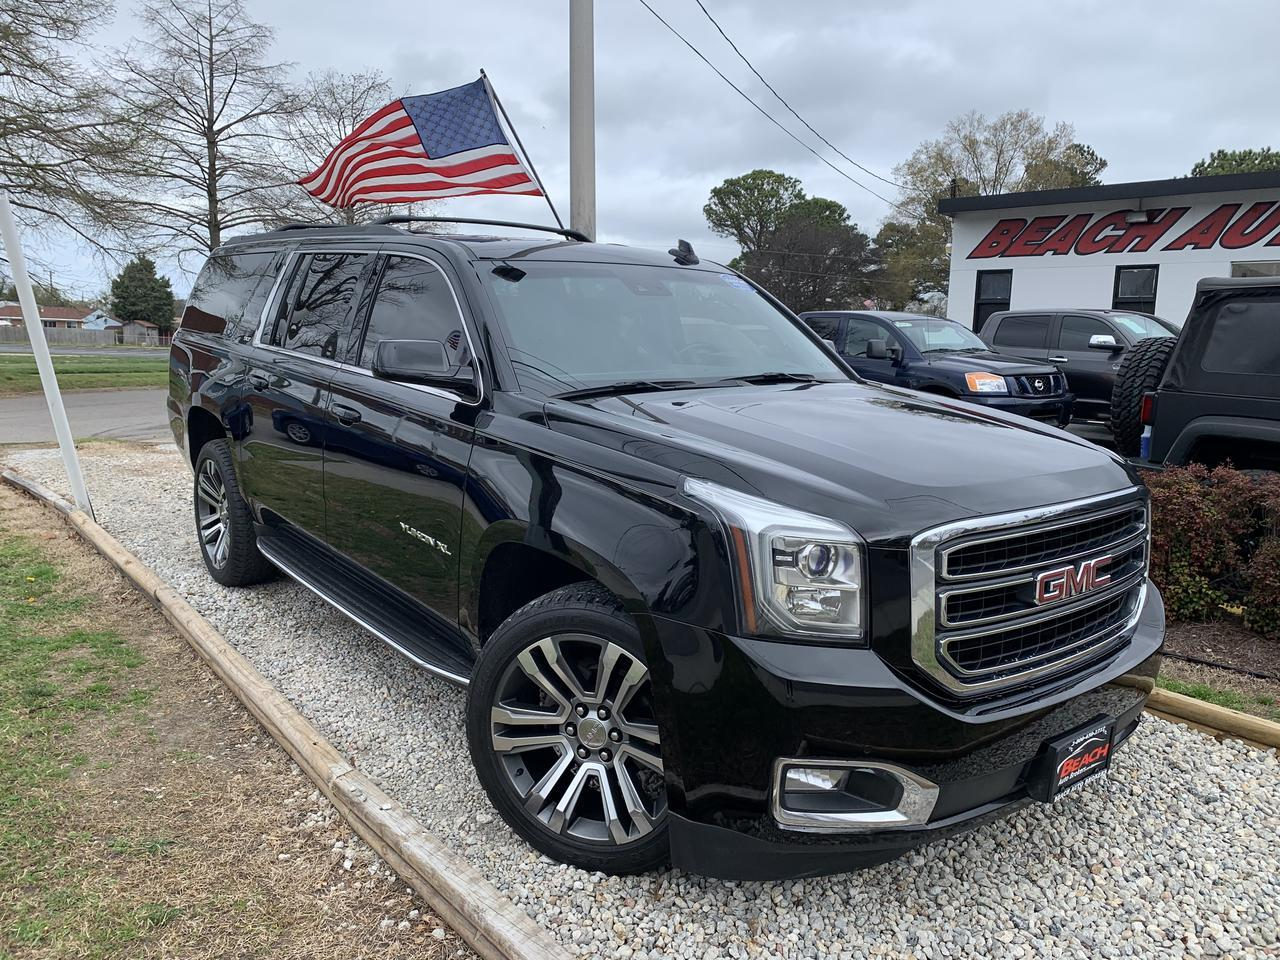 2015 GMC YUKON XL SLT 4X4, WARRANTY, LEATHER, 3RD ROW, HEATED/COOLED SEATS, NAV, BLUEOOTH, FULLY LOADED! Norfolk VA